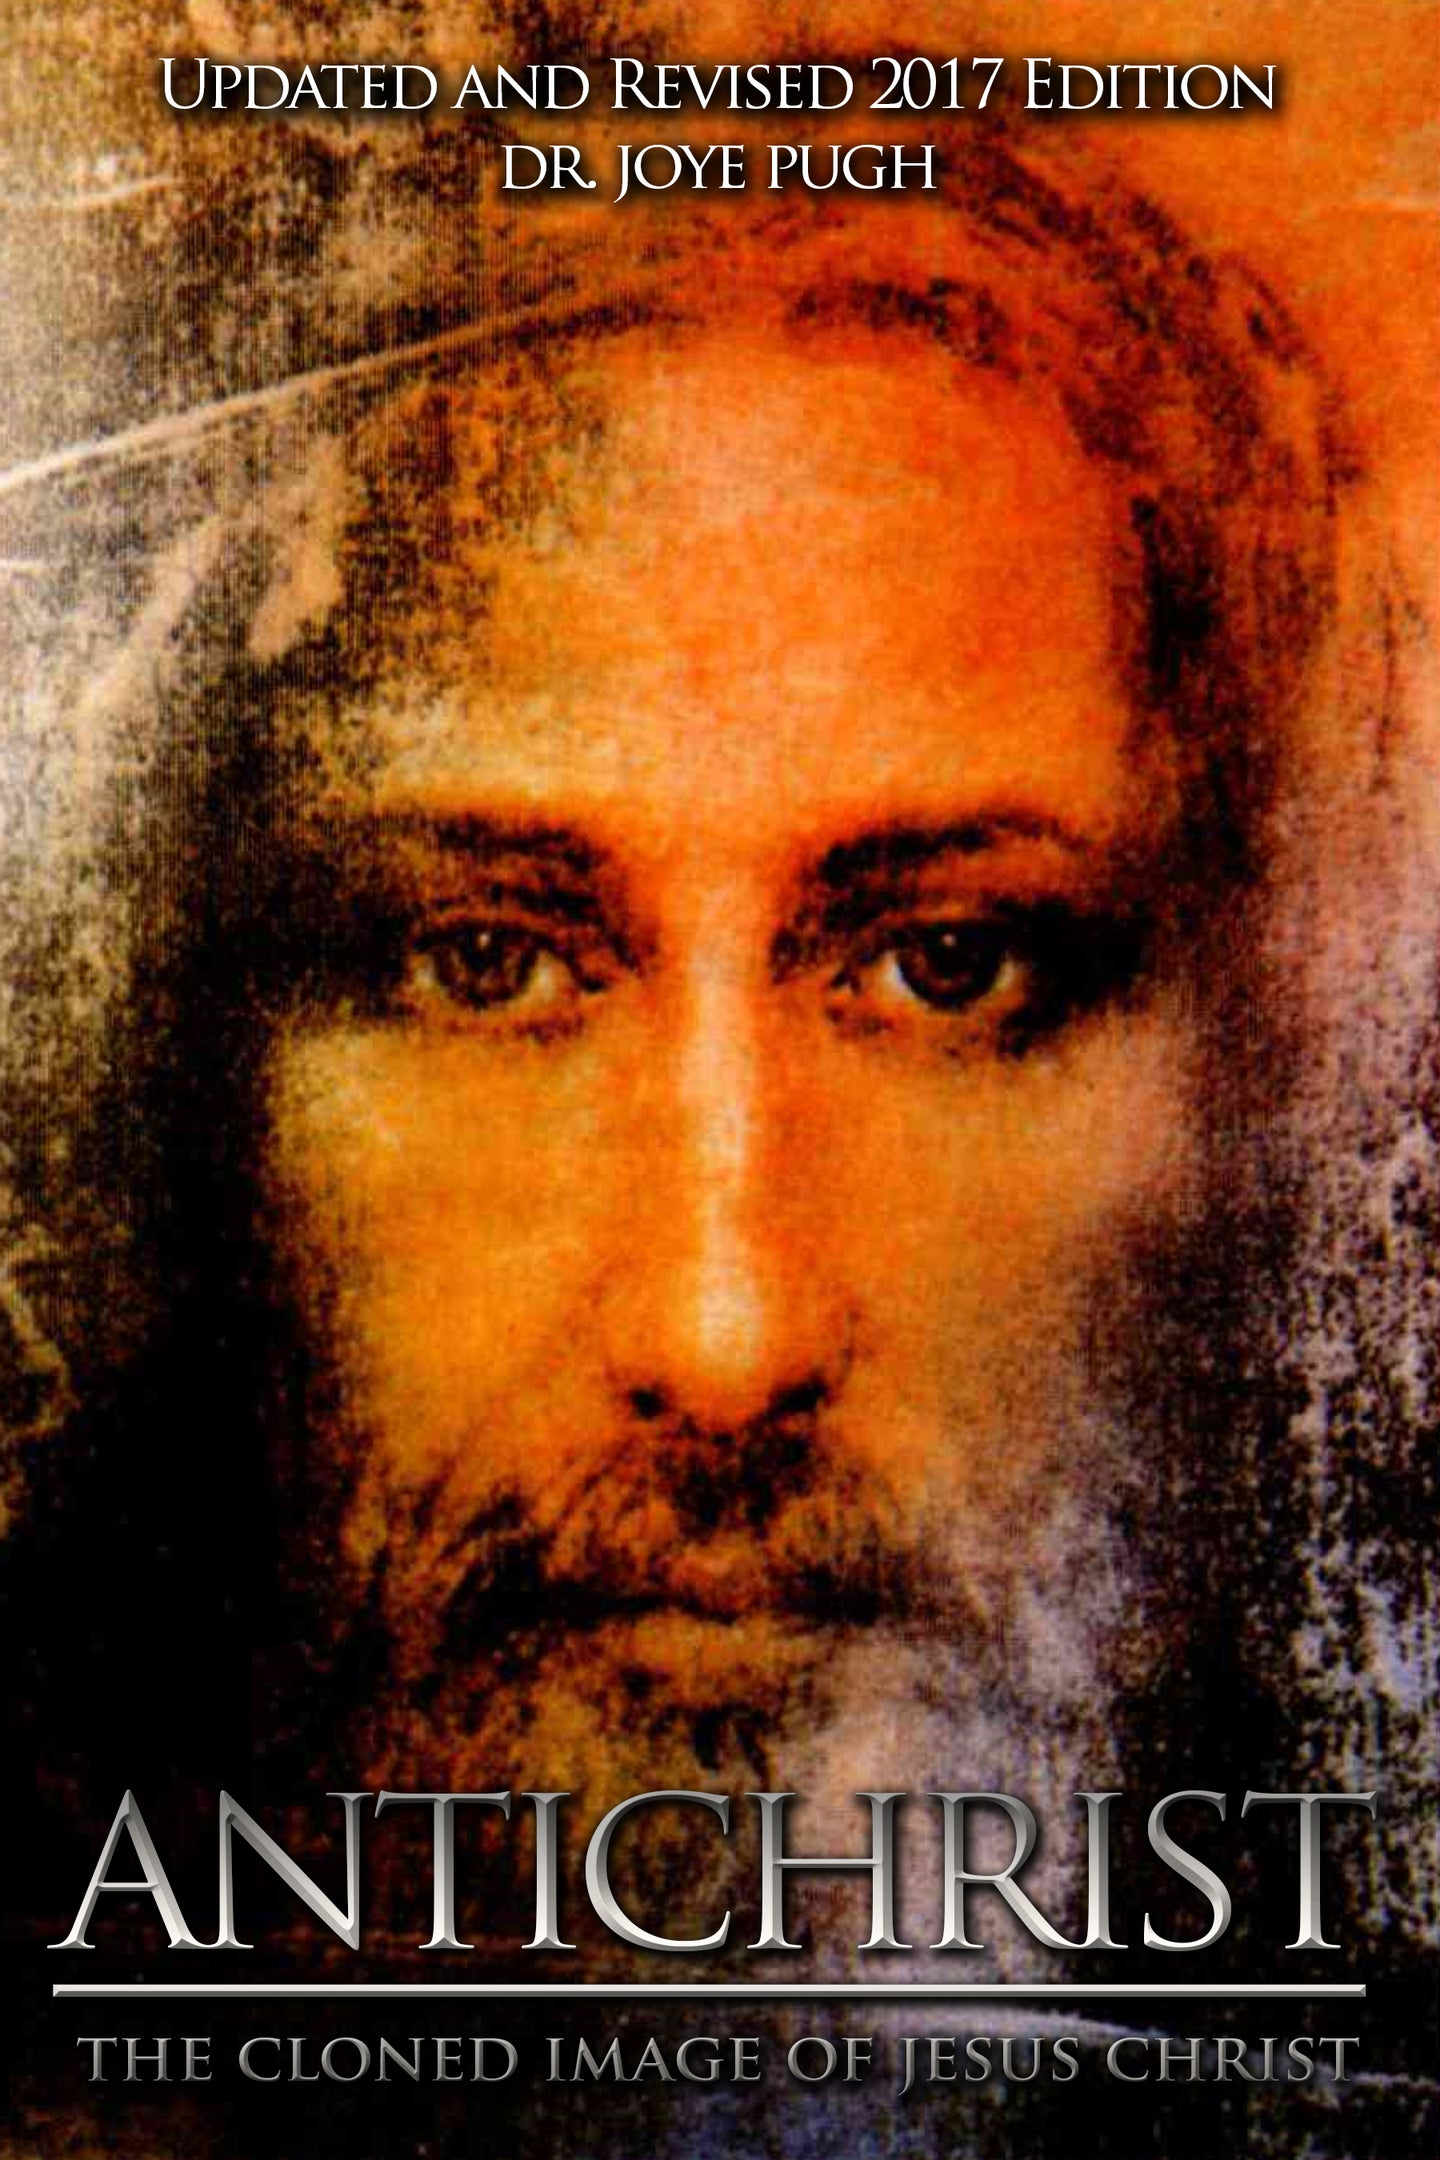 Antichrist: The Cloned Image of Jesus Christ